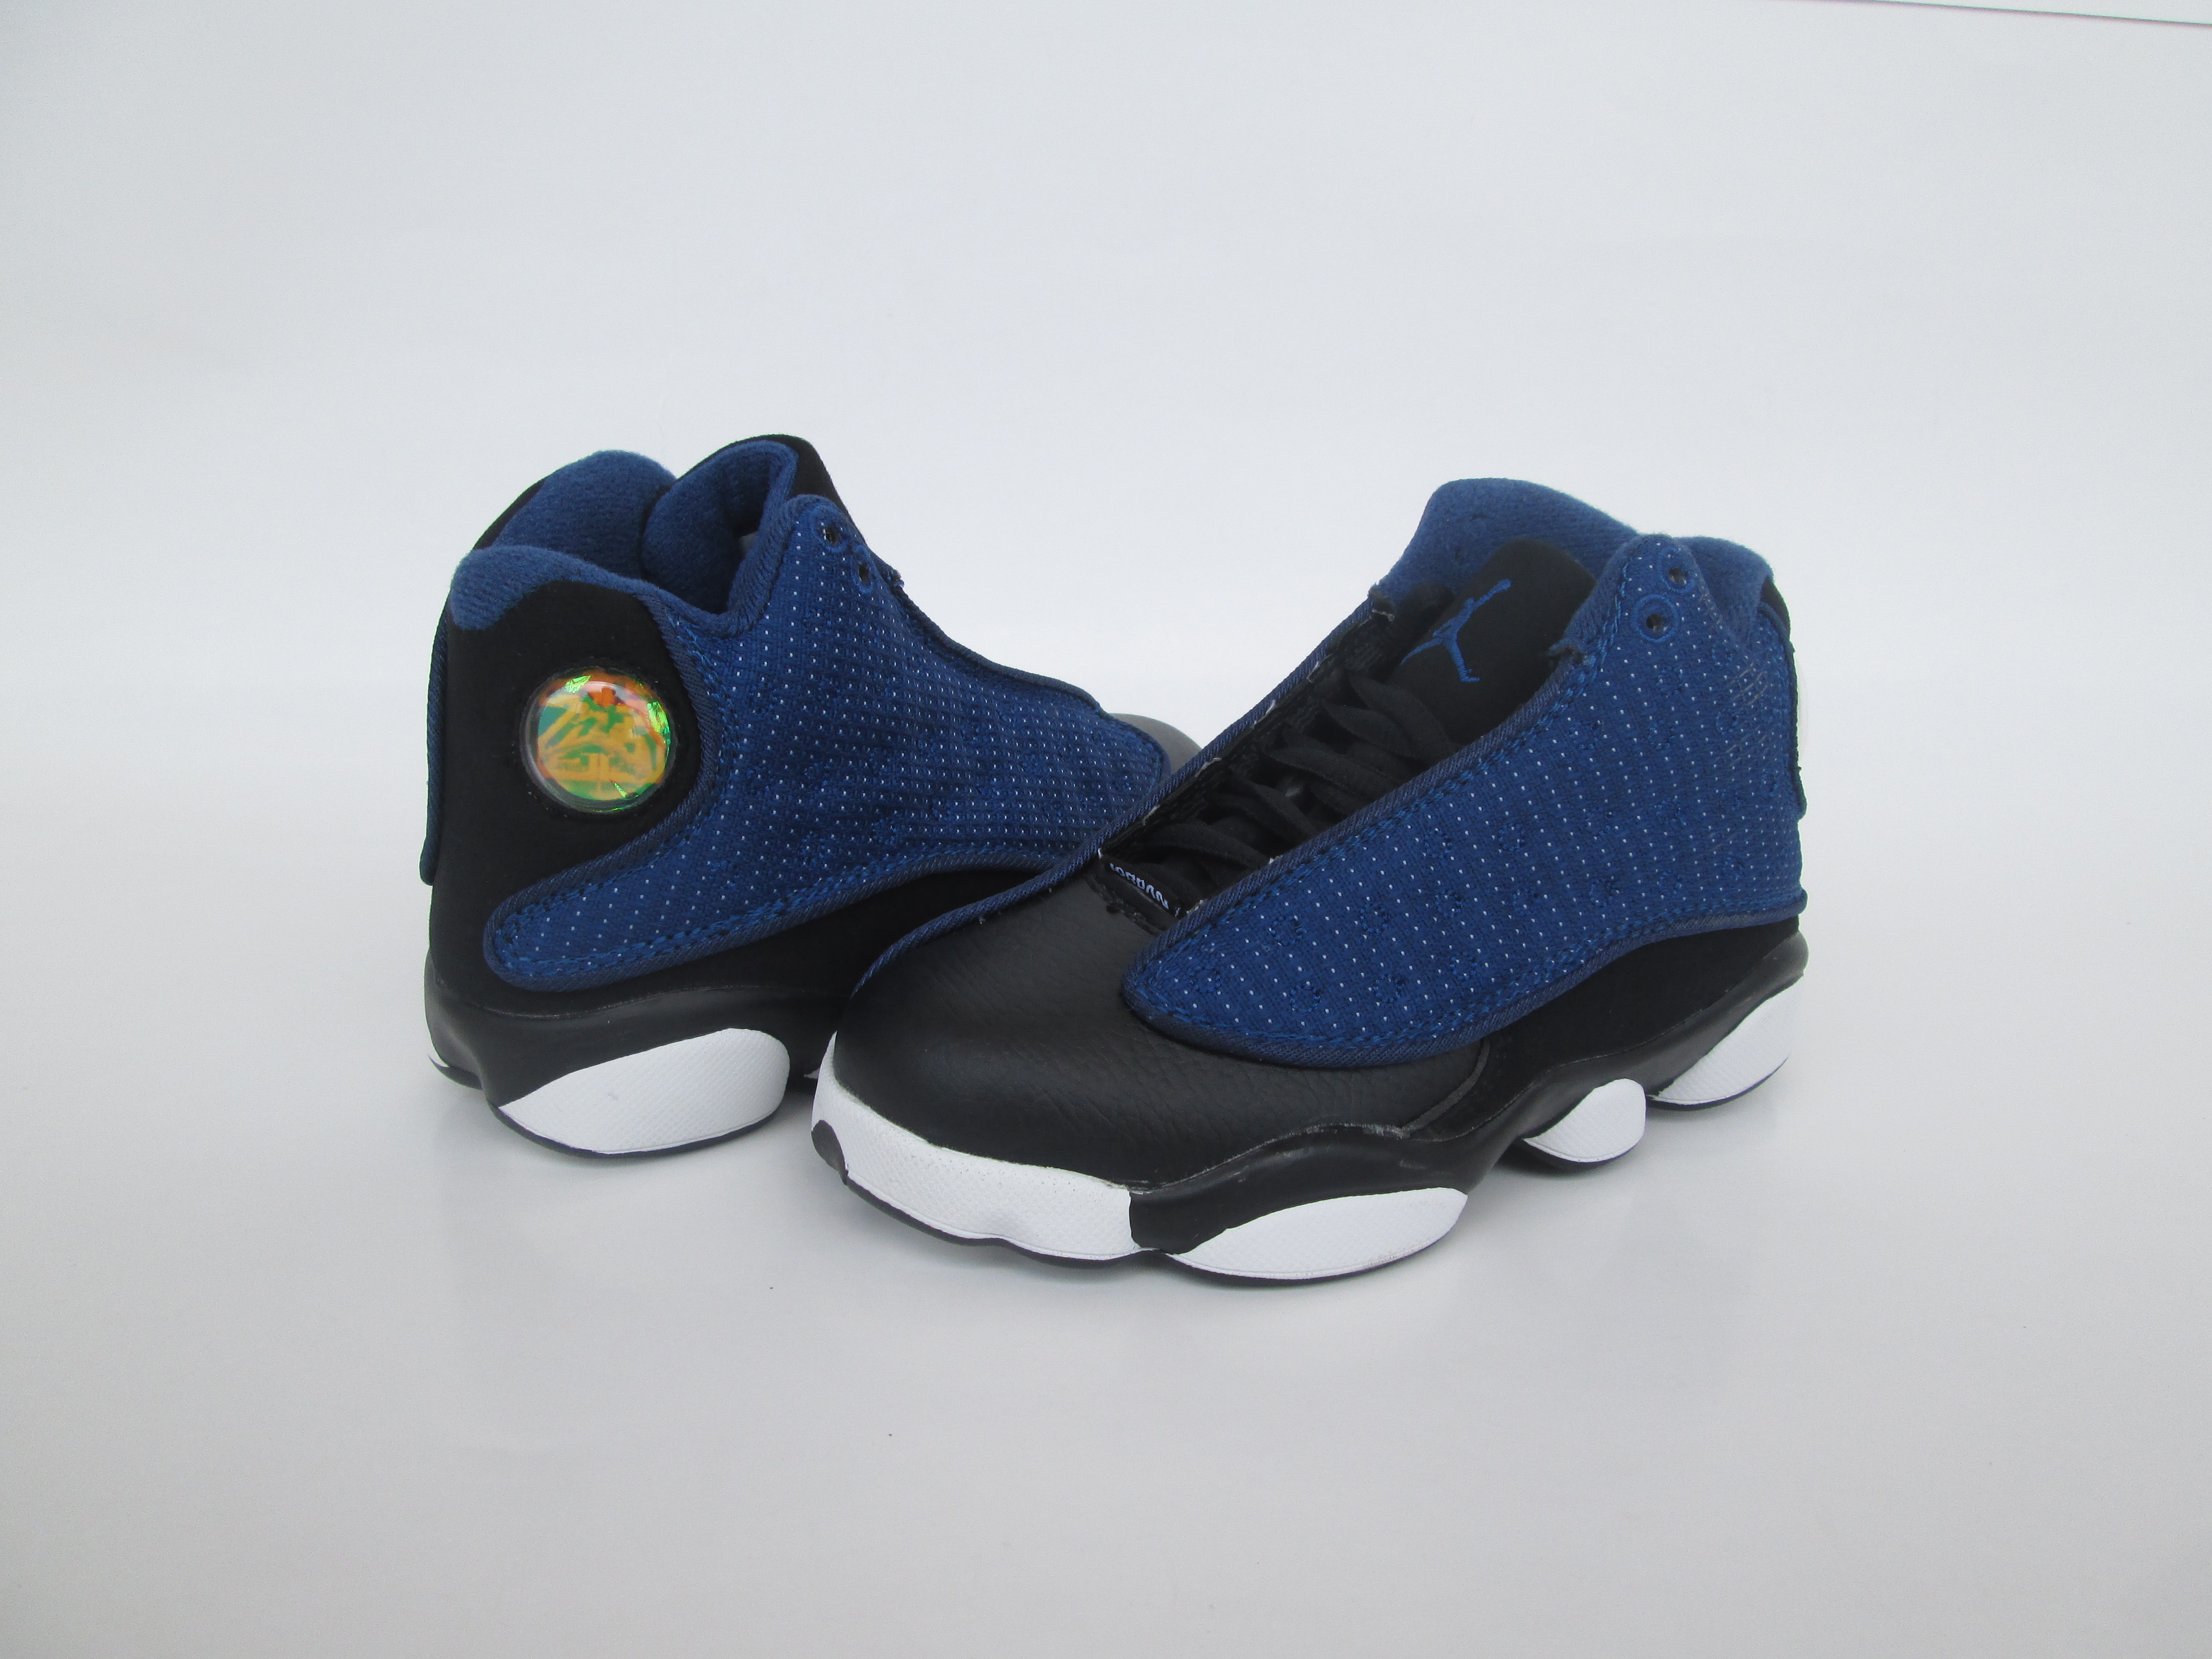 New Air Jordan 13 Deep Blue Black White Shoes For Kids